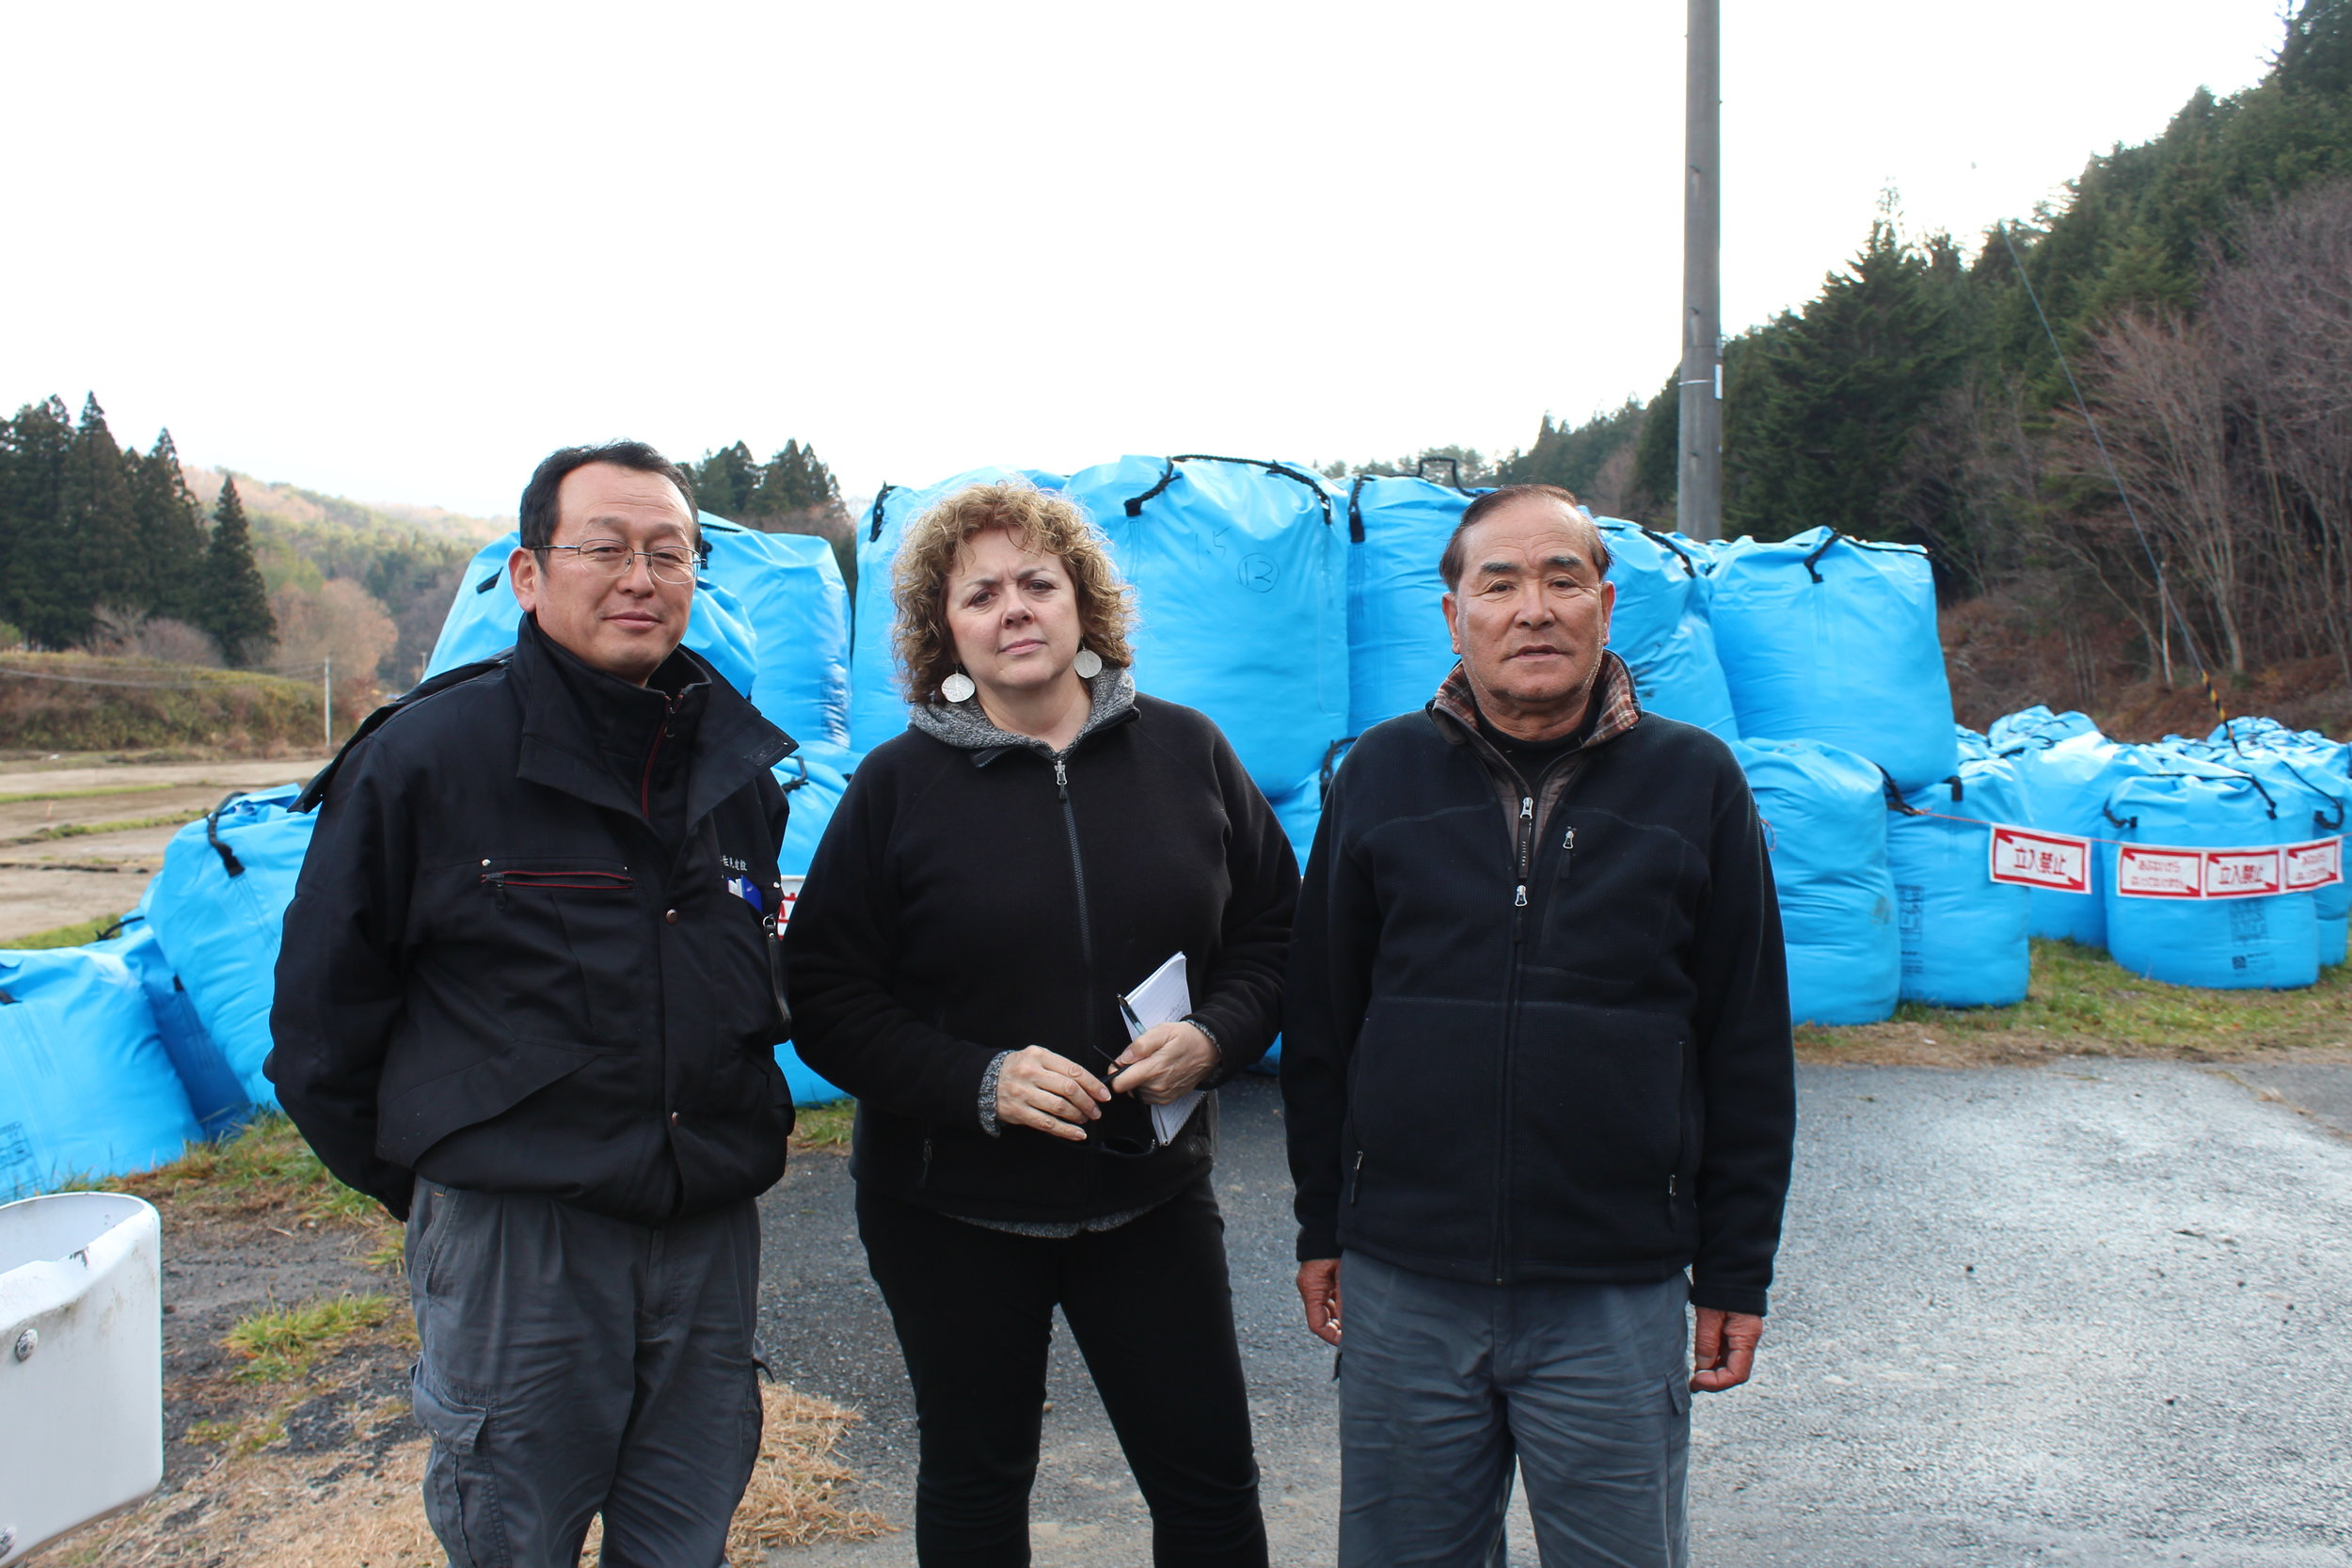 Bags of radioative waste awaiting some final, safe resting place.16.JPG